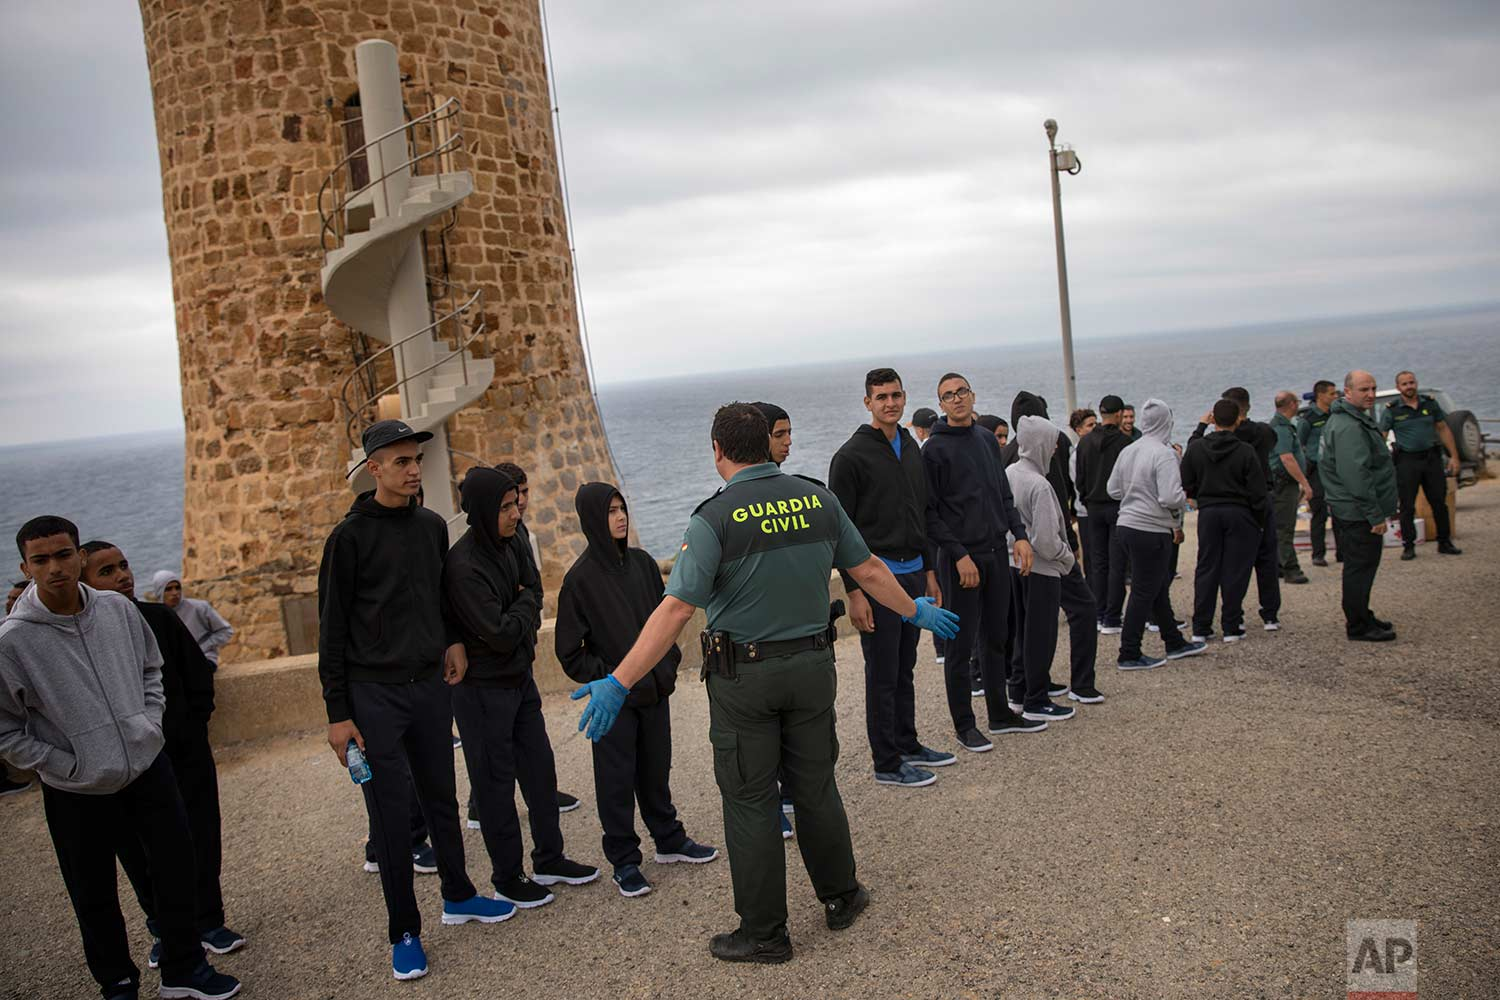 A Guardia Civil officer stands next to Moroccan migrants as they line up by the Camarinal Lighthouse after arriving on the beach by sailing in a rubber dinghy near Tarifa, in the south of Spain, Thursday, June 28, 2018. The group consisted of 35 unaccompanied Moroccan migrants. (AP Photo/Emilio Morenatti)